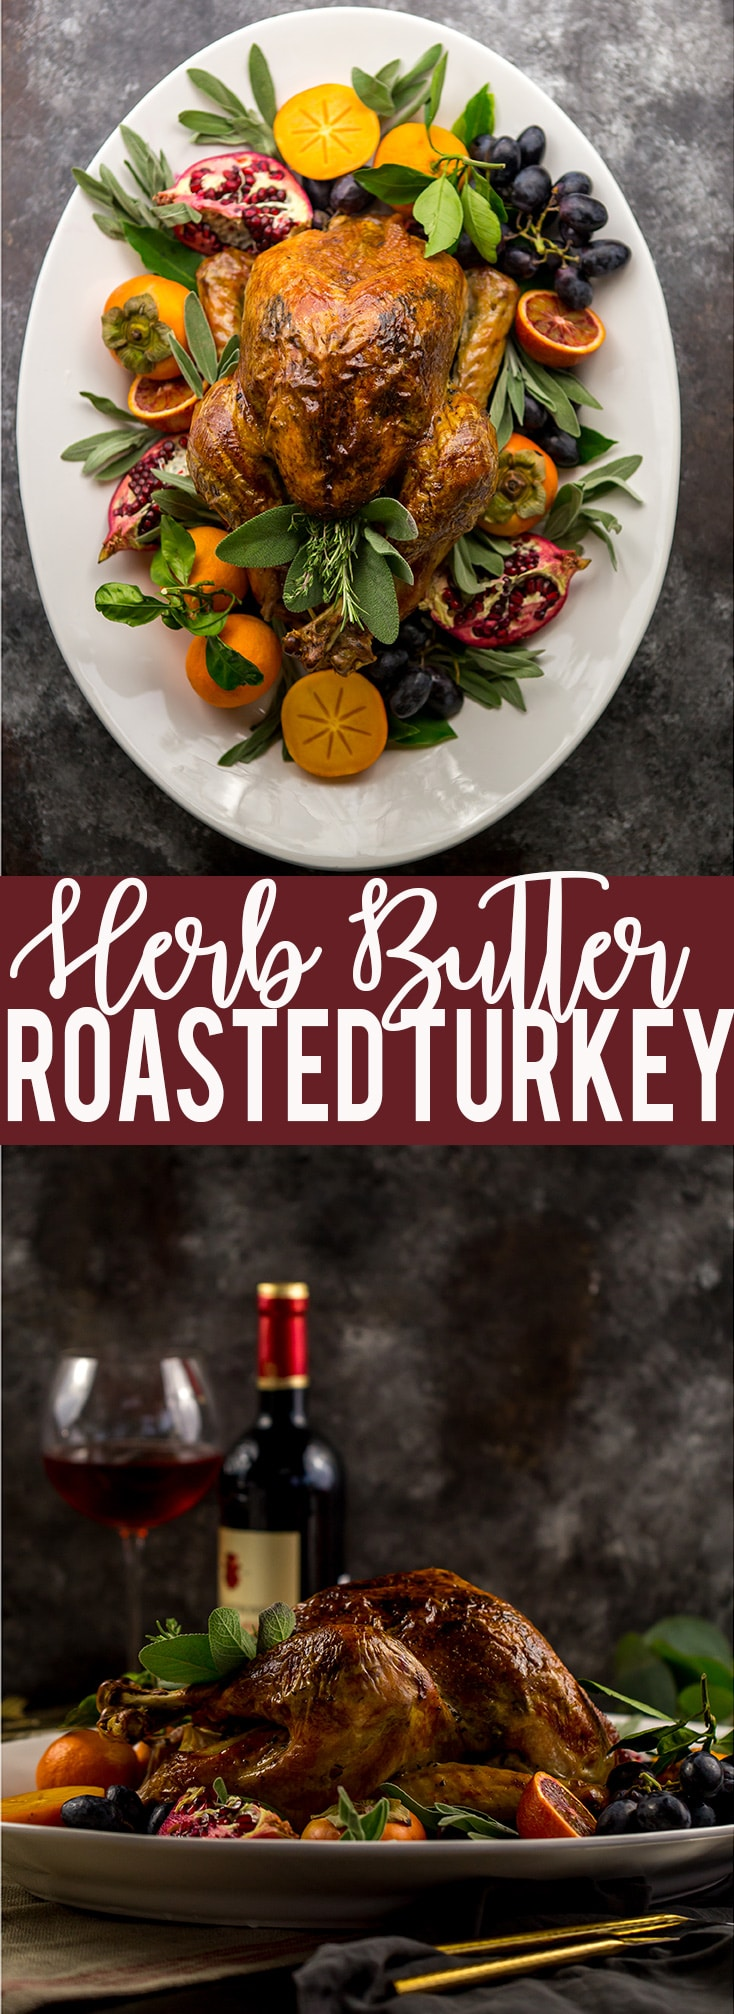 Easy Herb Butter Roasted Turkey | Thanksgiving Turkey Recipe | Turkey Seasoning | Oven Roasted Turkey | Low Carb Thanksgiving Turkey Recipe | Juicy Turkey Recipe | Turkey recipe using cheesecloth #turkey #thanksgiving #Thanksgivingturkey #thanksgivingrecipe